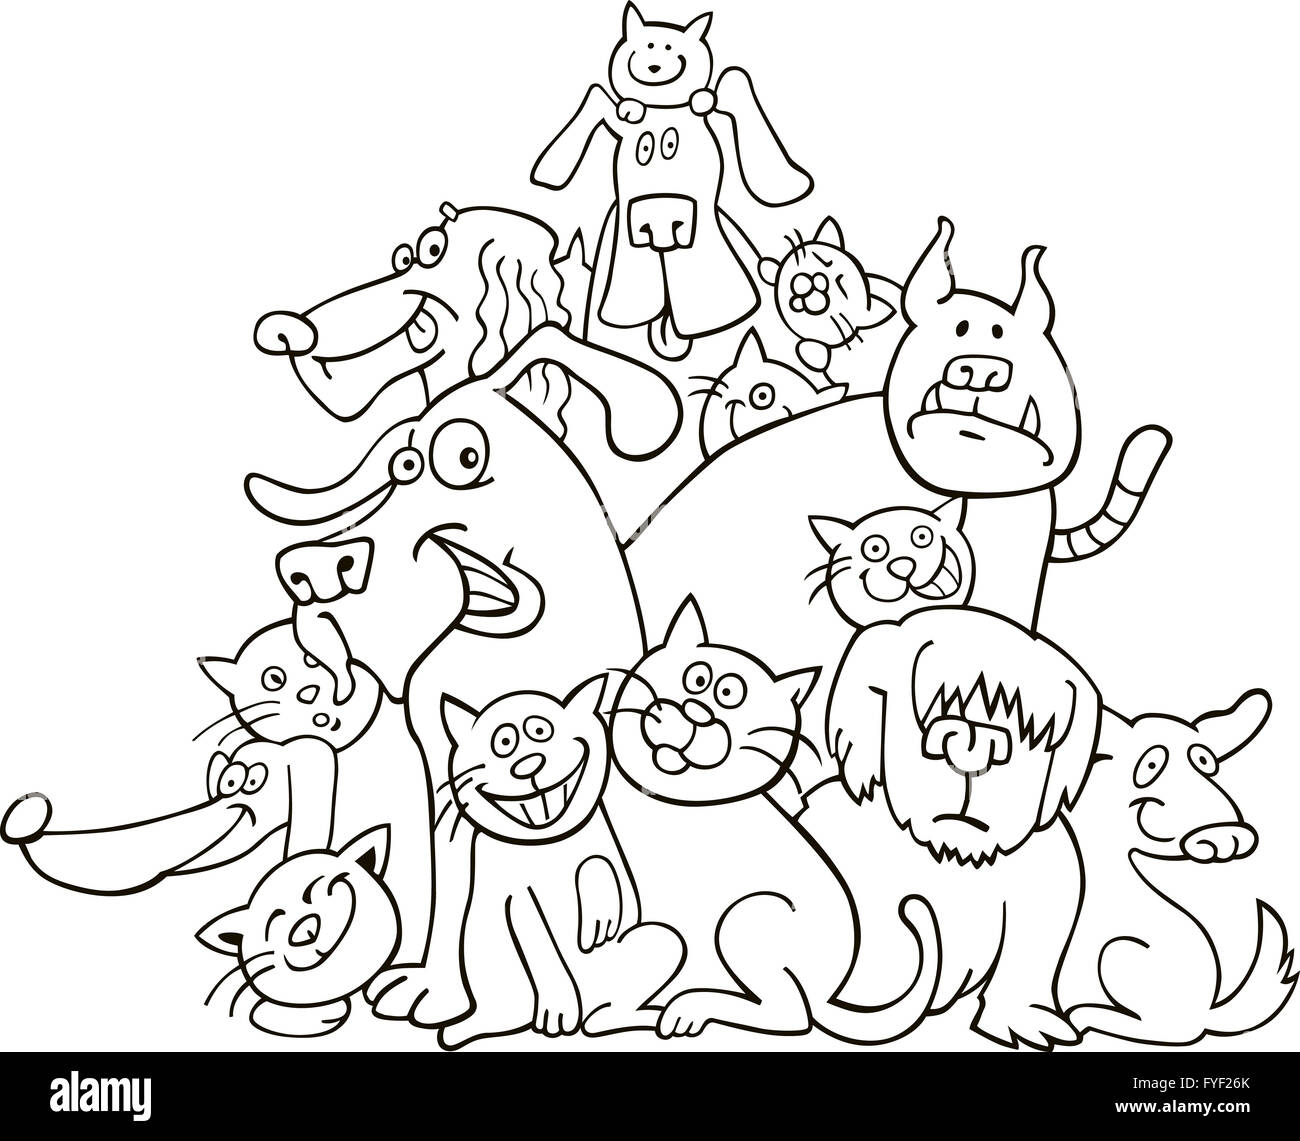 Cats And Dogs For Coloring Book